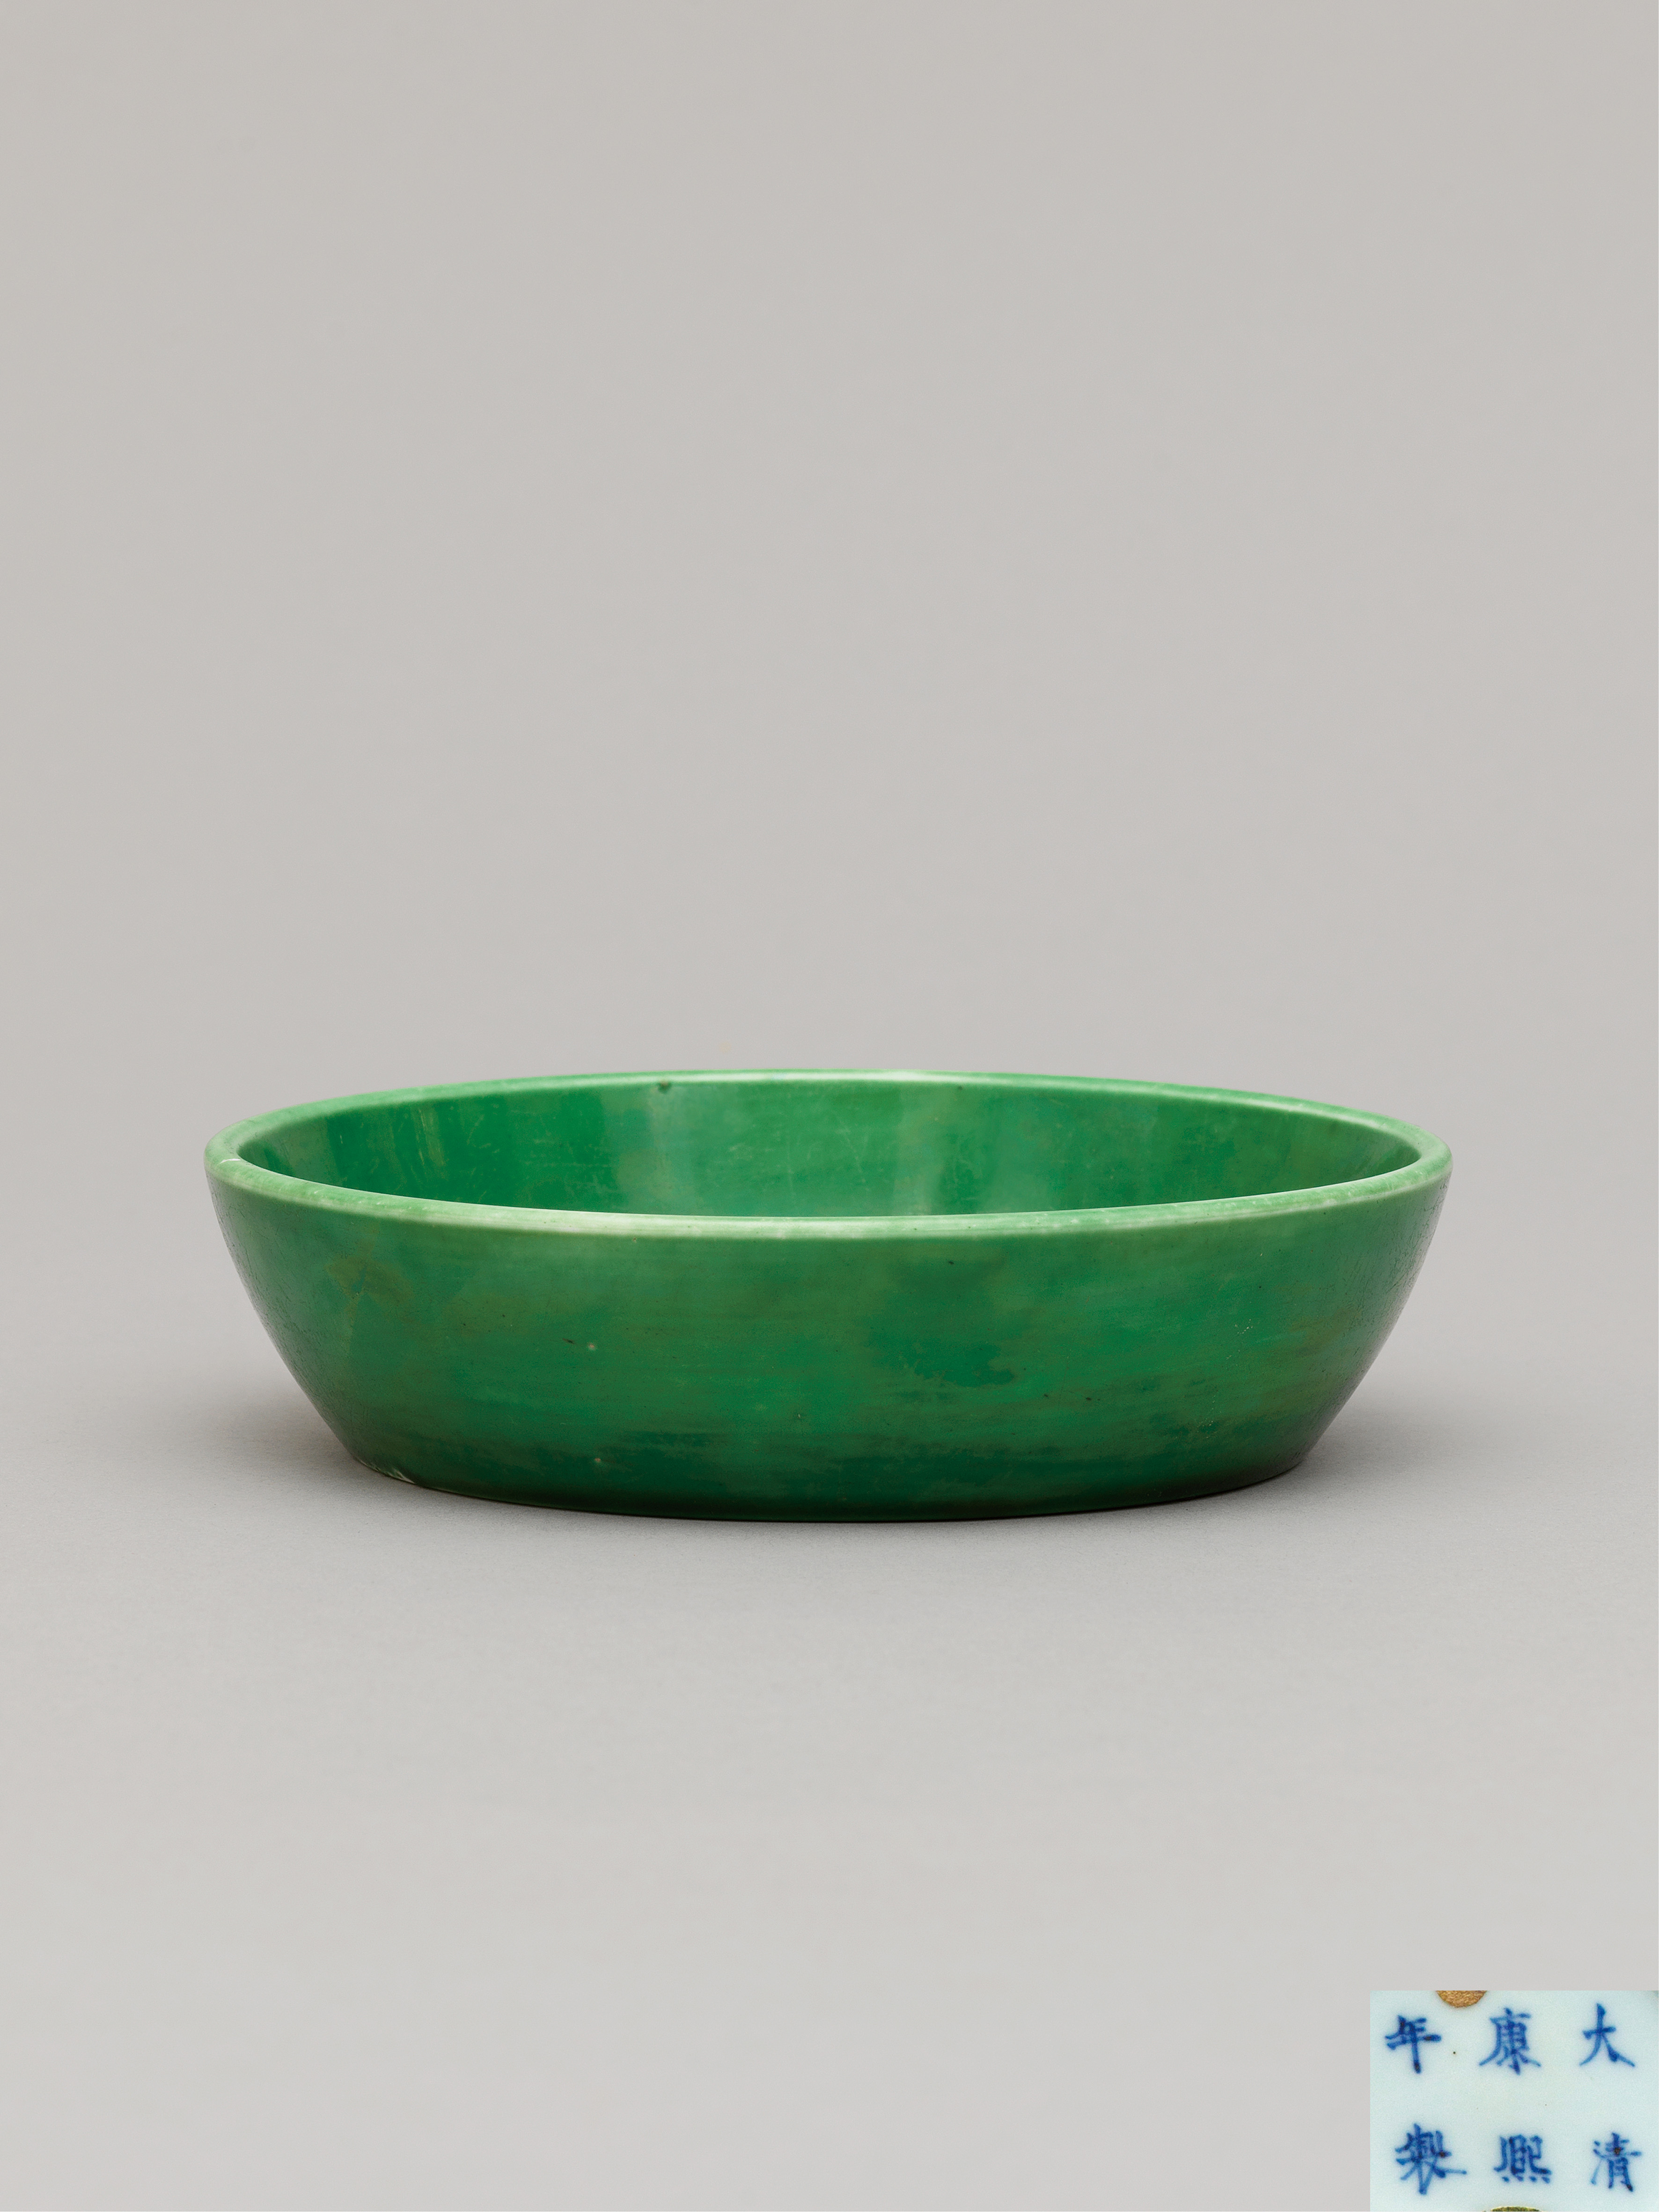 Lot 24 - An apple-green glazed brushwasher, Qing Dynasty, Kangxi mark and of the period